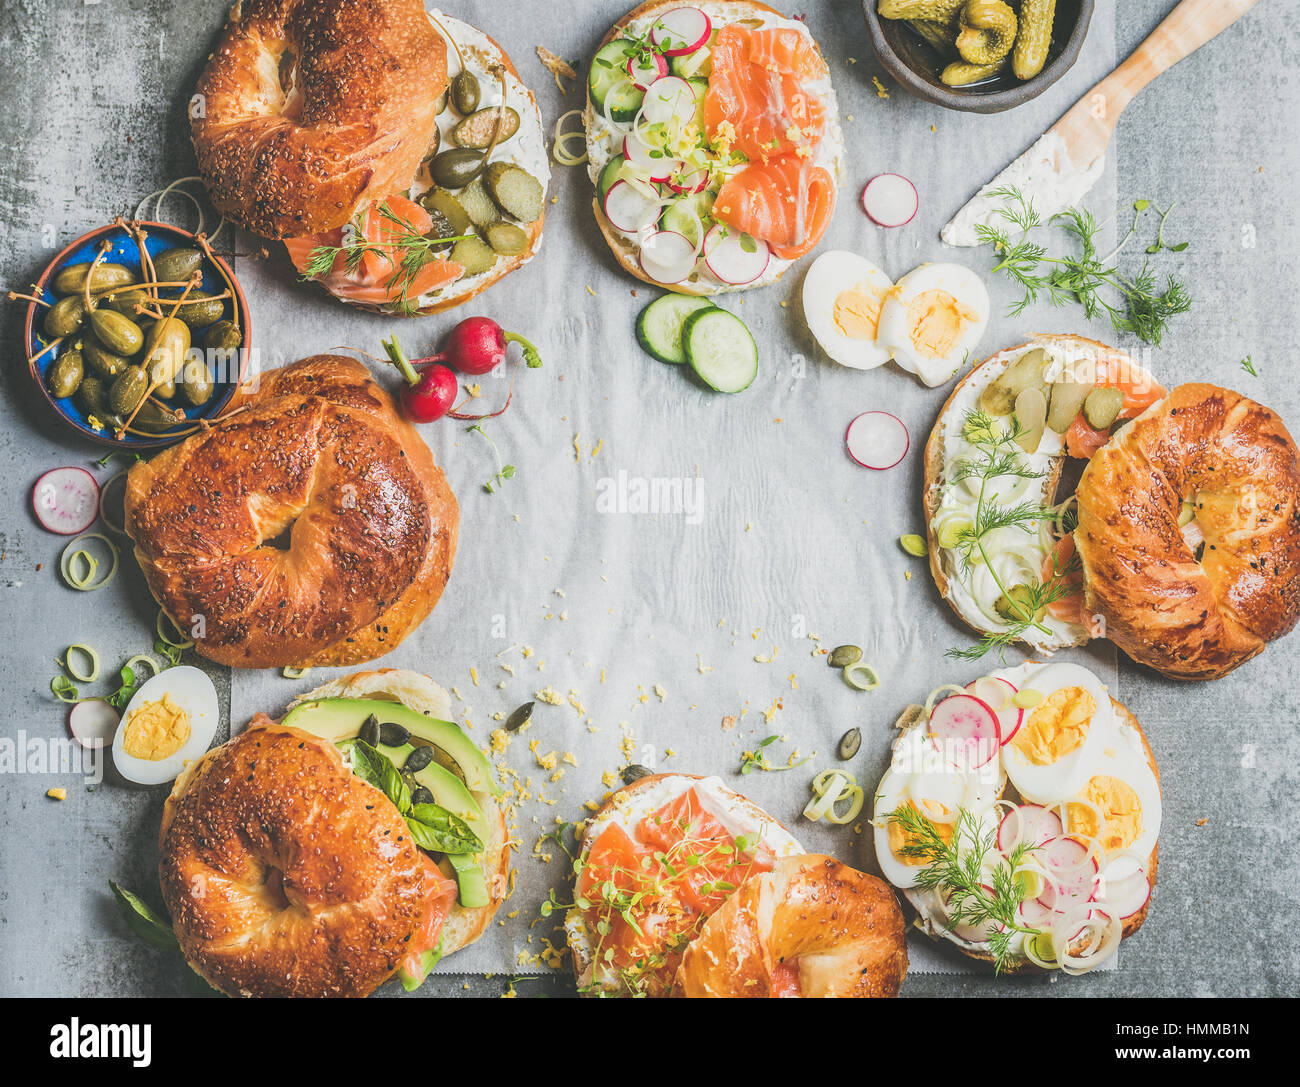 Variety of fresh bagels with different fillings, copy space - Stock Image